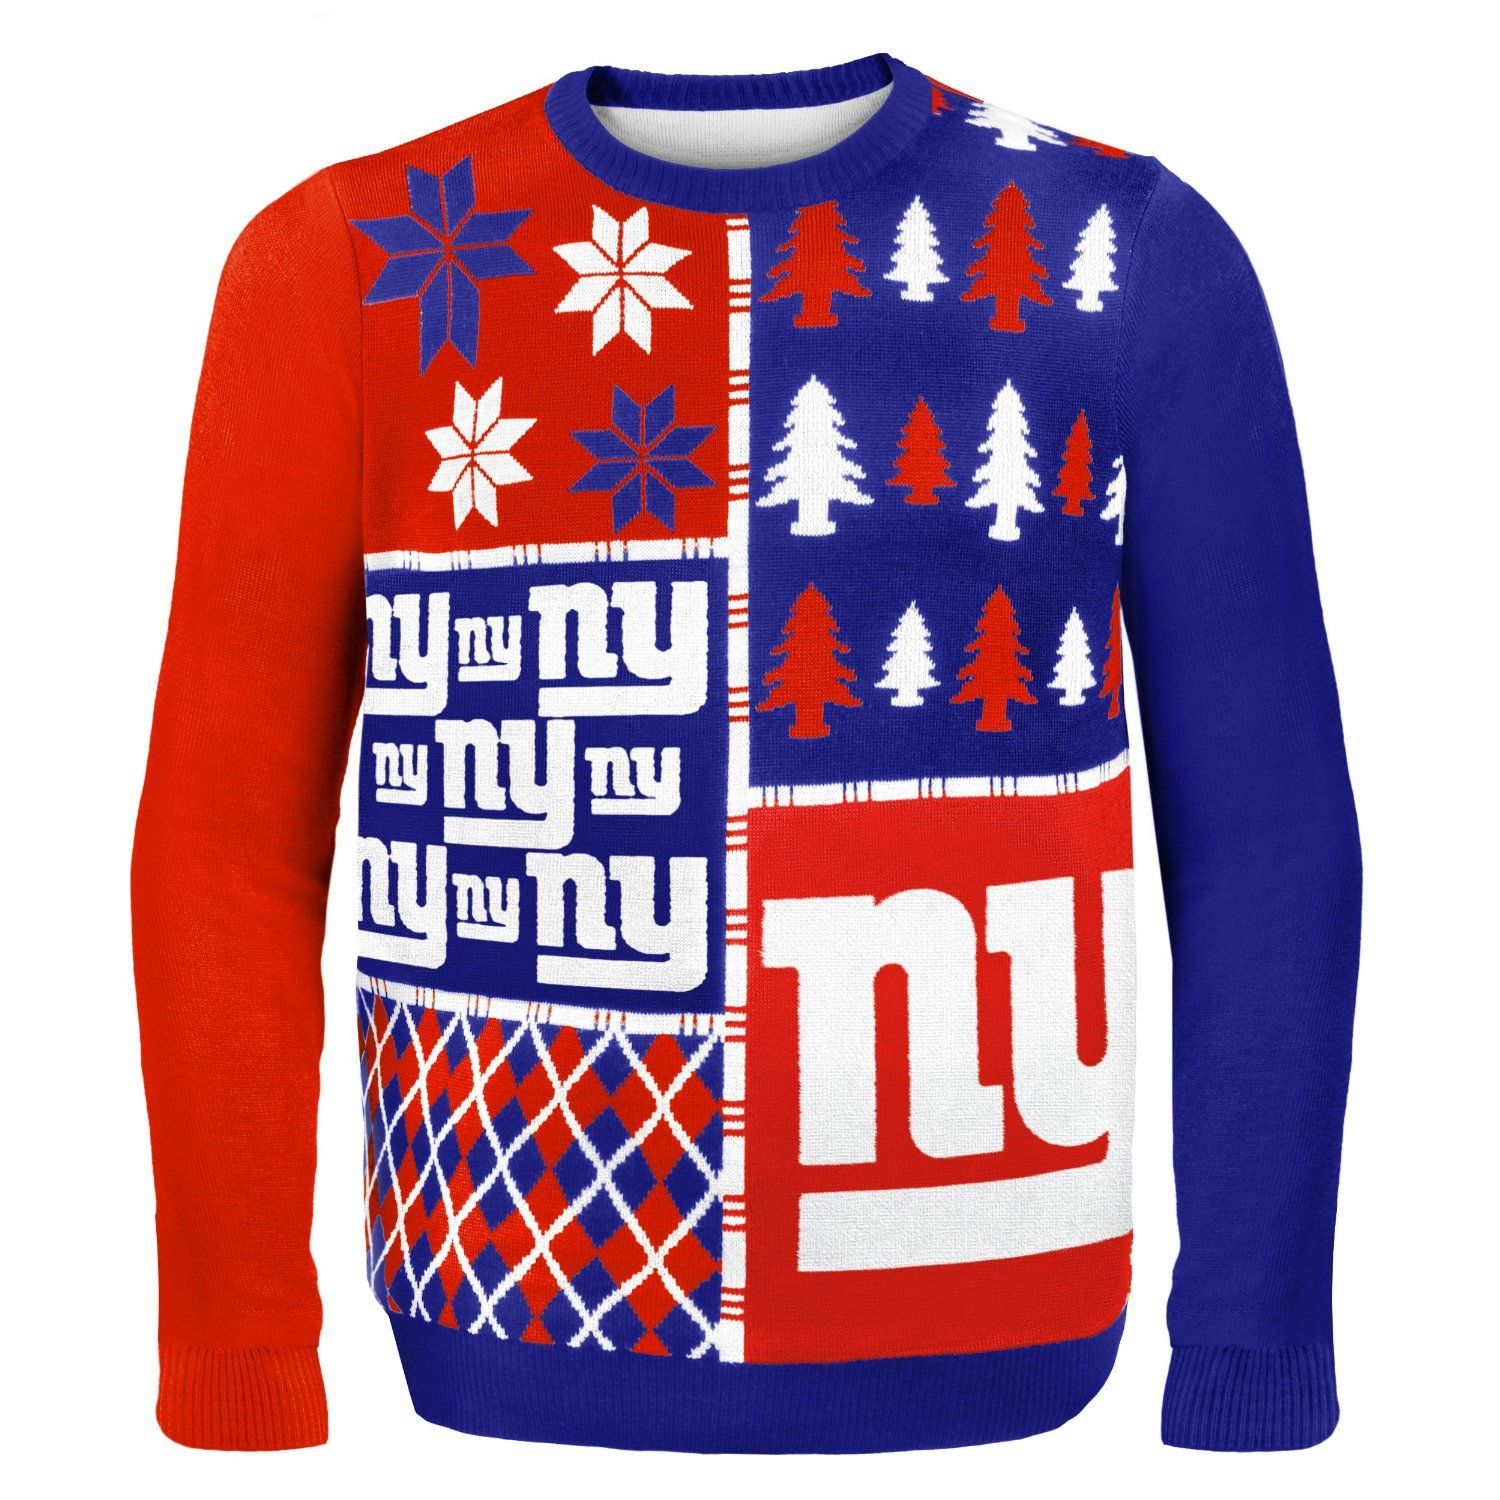 NFL Busy Block Ugly Sweater – New York Giants | NFL-NFC East Ugly ...